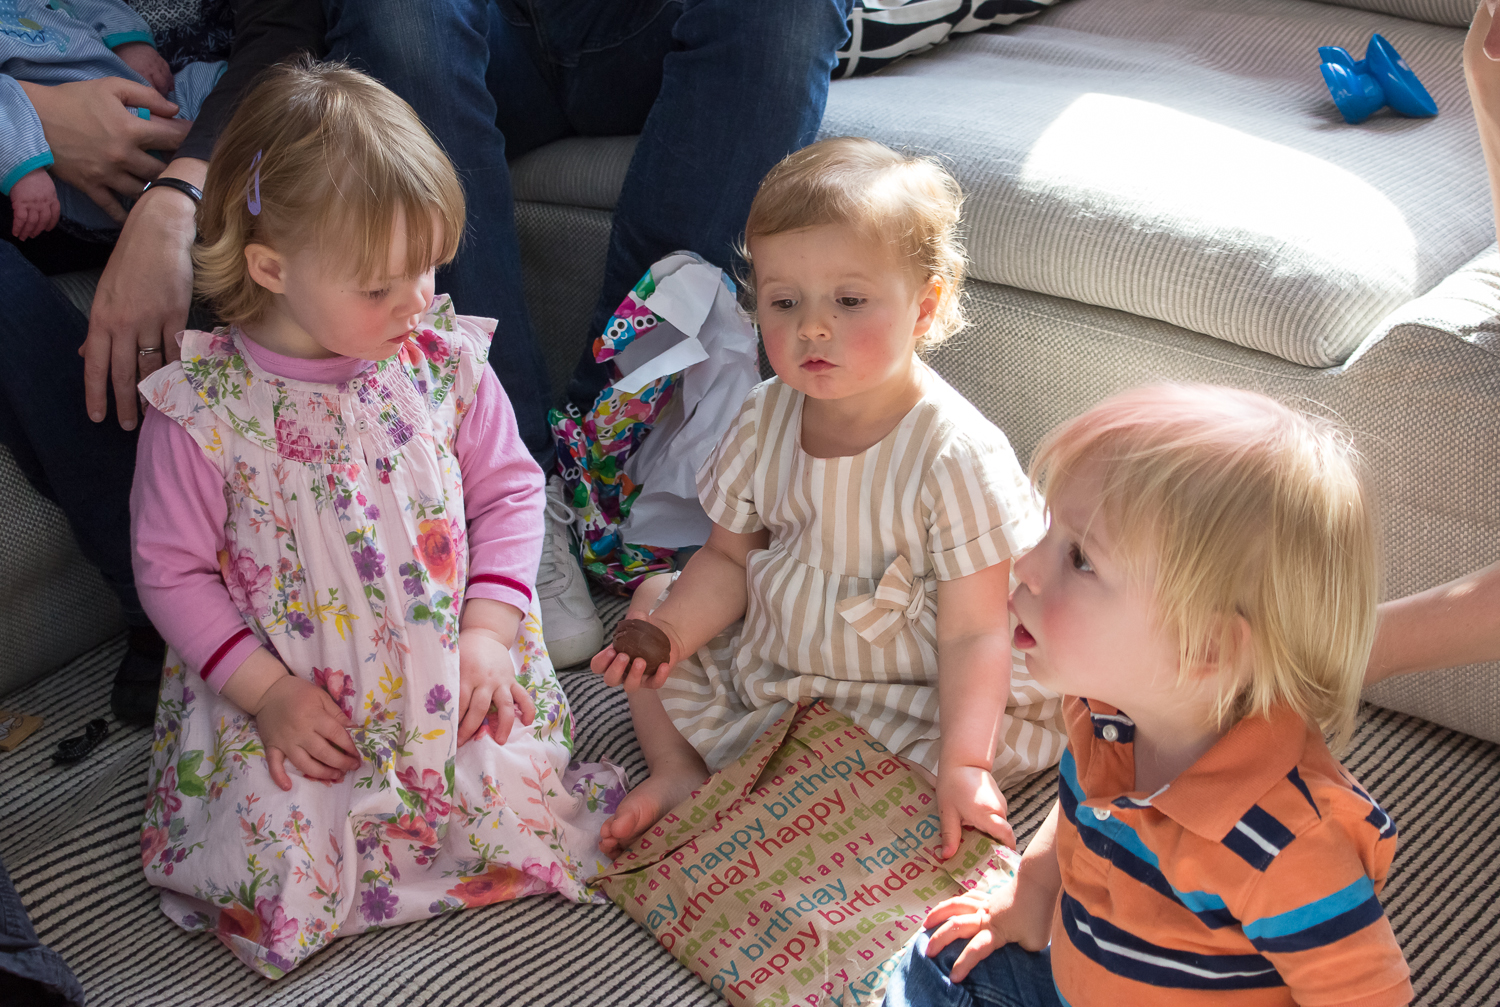 Three children sat on a lounge floor playing parce-the-parcel, clucthing their winnings